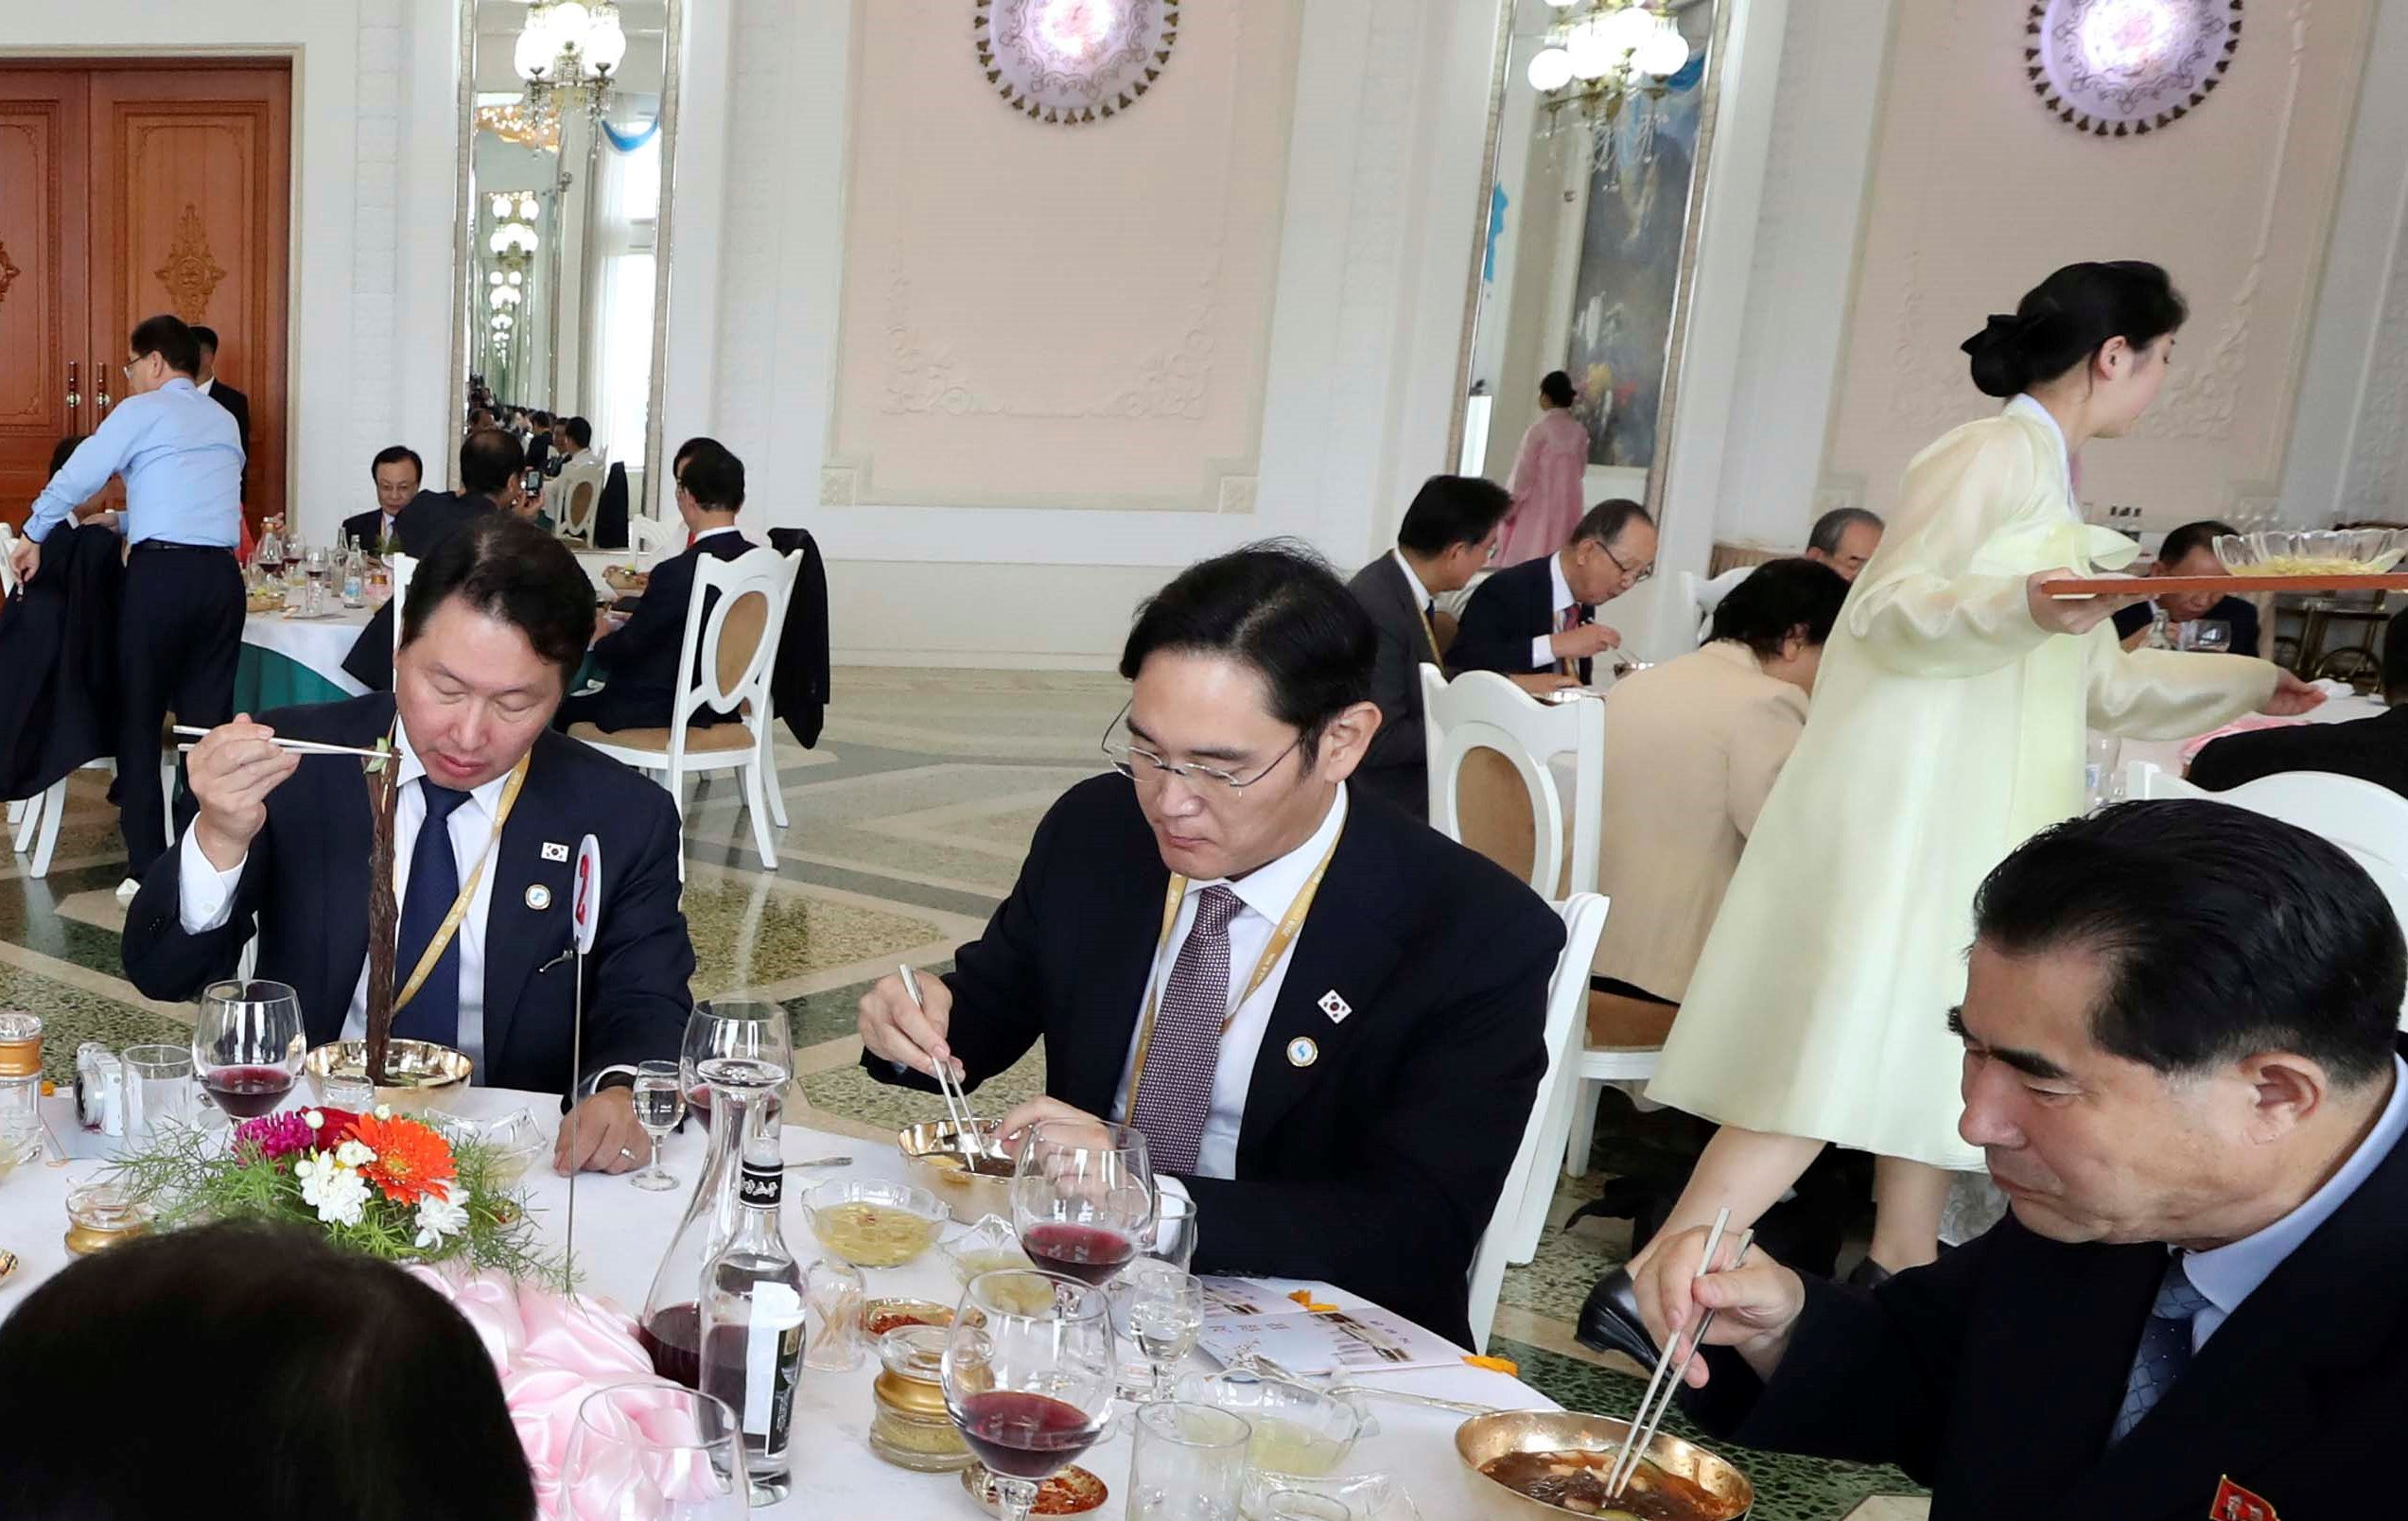 nikkei.com - KIM JAEWON - Samsung heir faces high price for cold noodles in Pyongyang